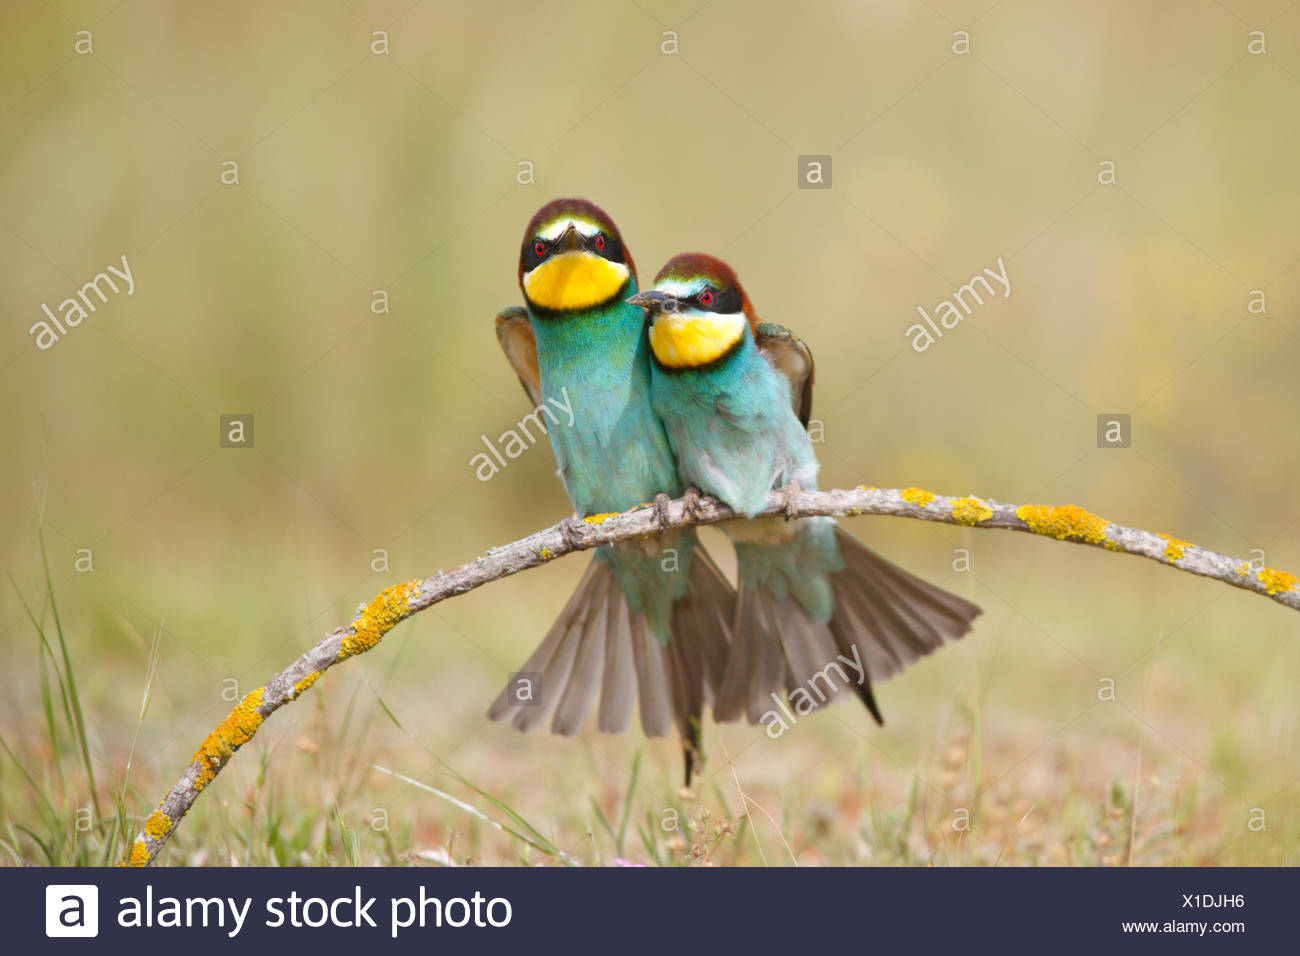 European bee eaters (Merops apiaster) sitting close together on branch. Seville, Spain - Stock Image